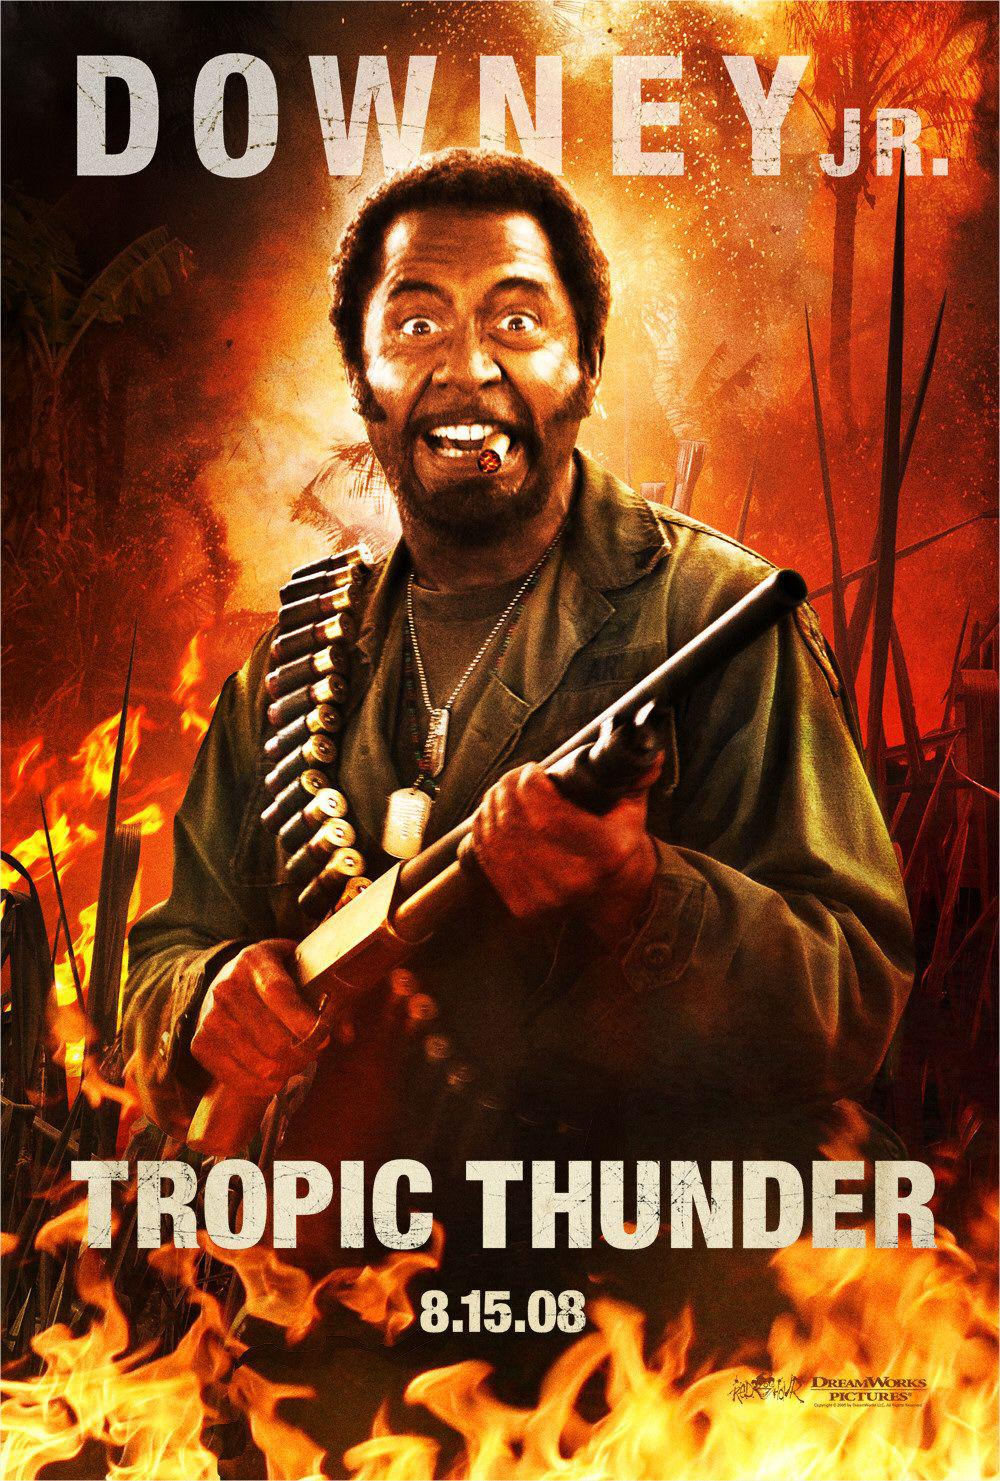 Tropic Thunder - Downey Jr